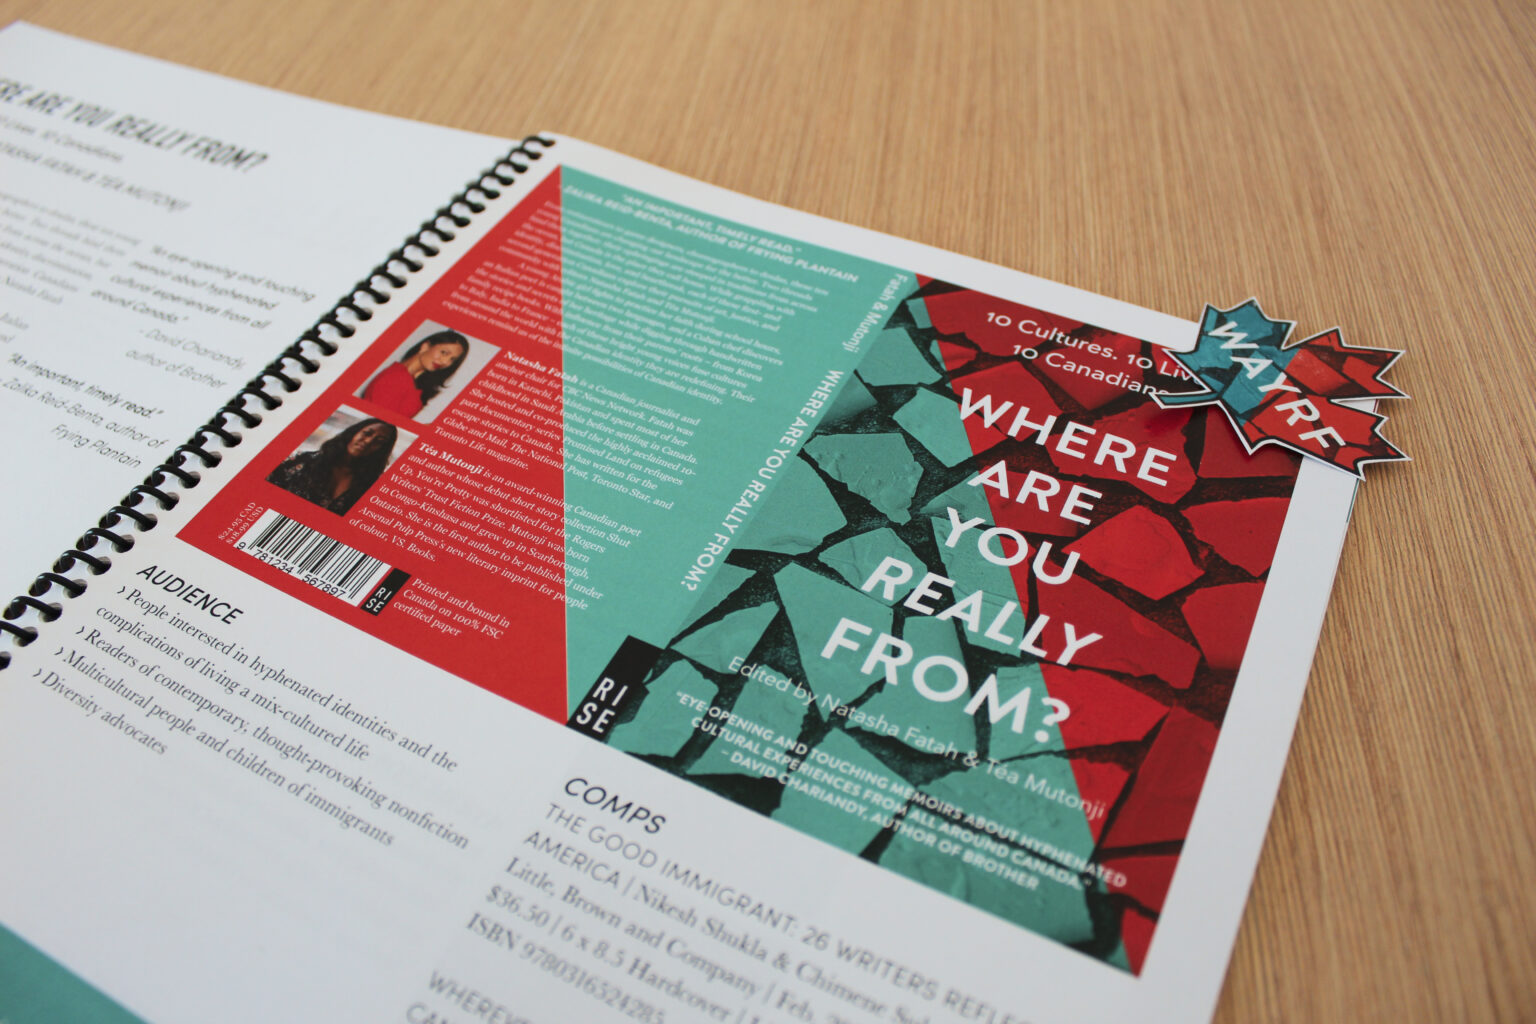 RISE project materials – Where Are You Really From tip sheet and sticker